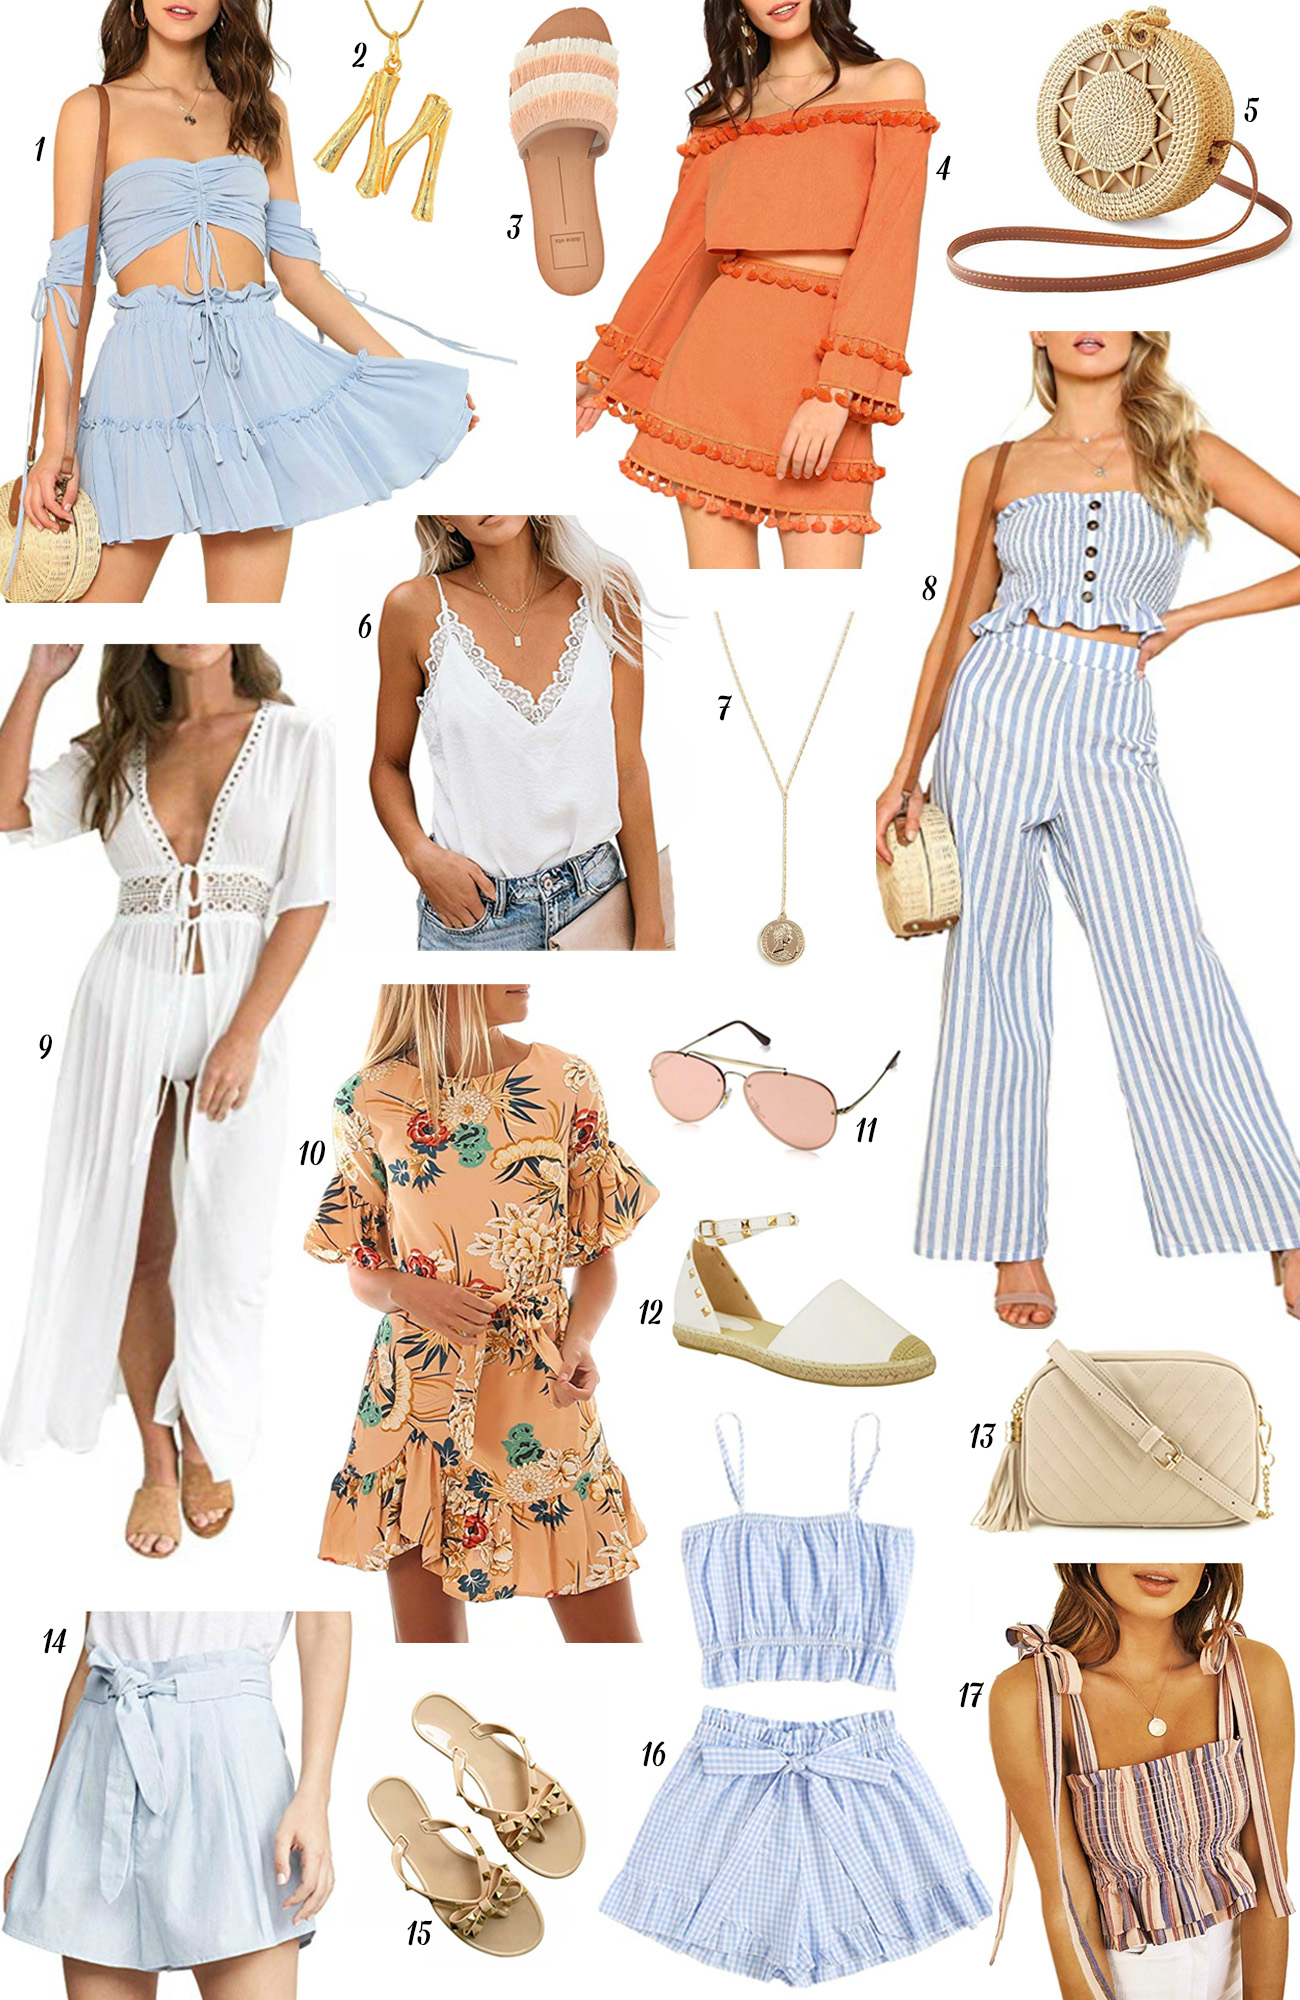 mash elle style fashion blogger | Amazon fashion| Amazon summer | summer fashion| summer style | romper | pink sunglasses | coral two piece | gold accents